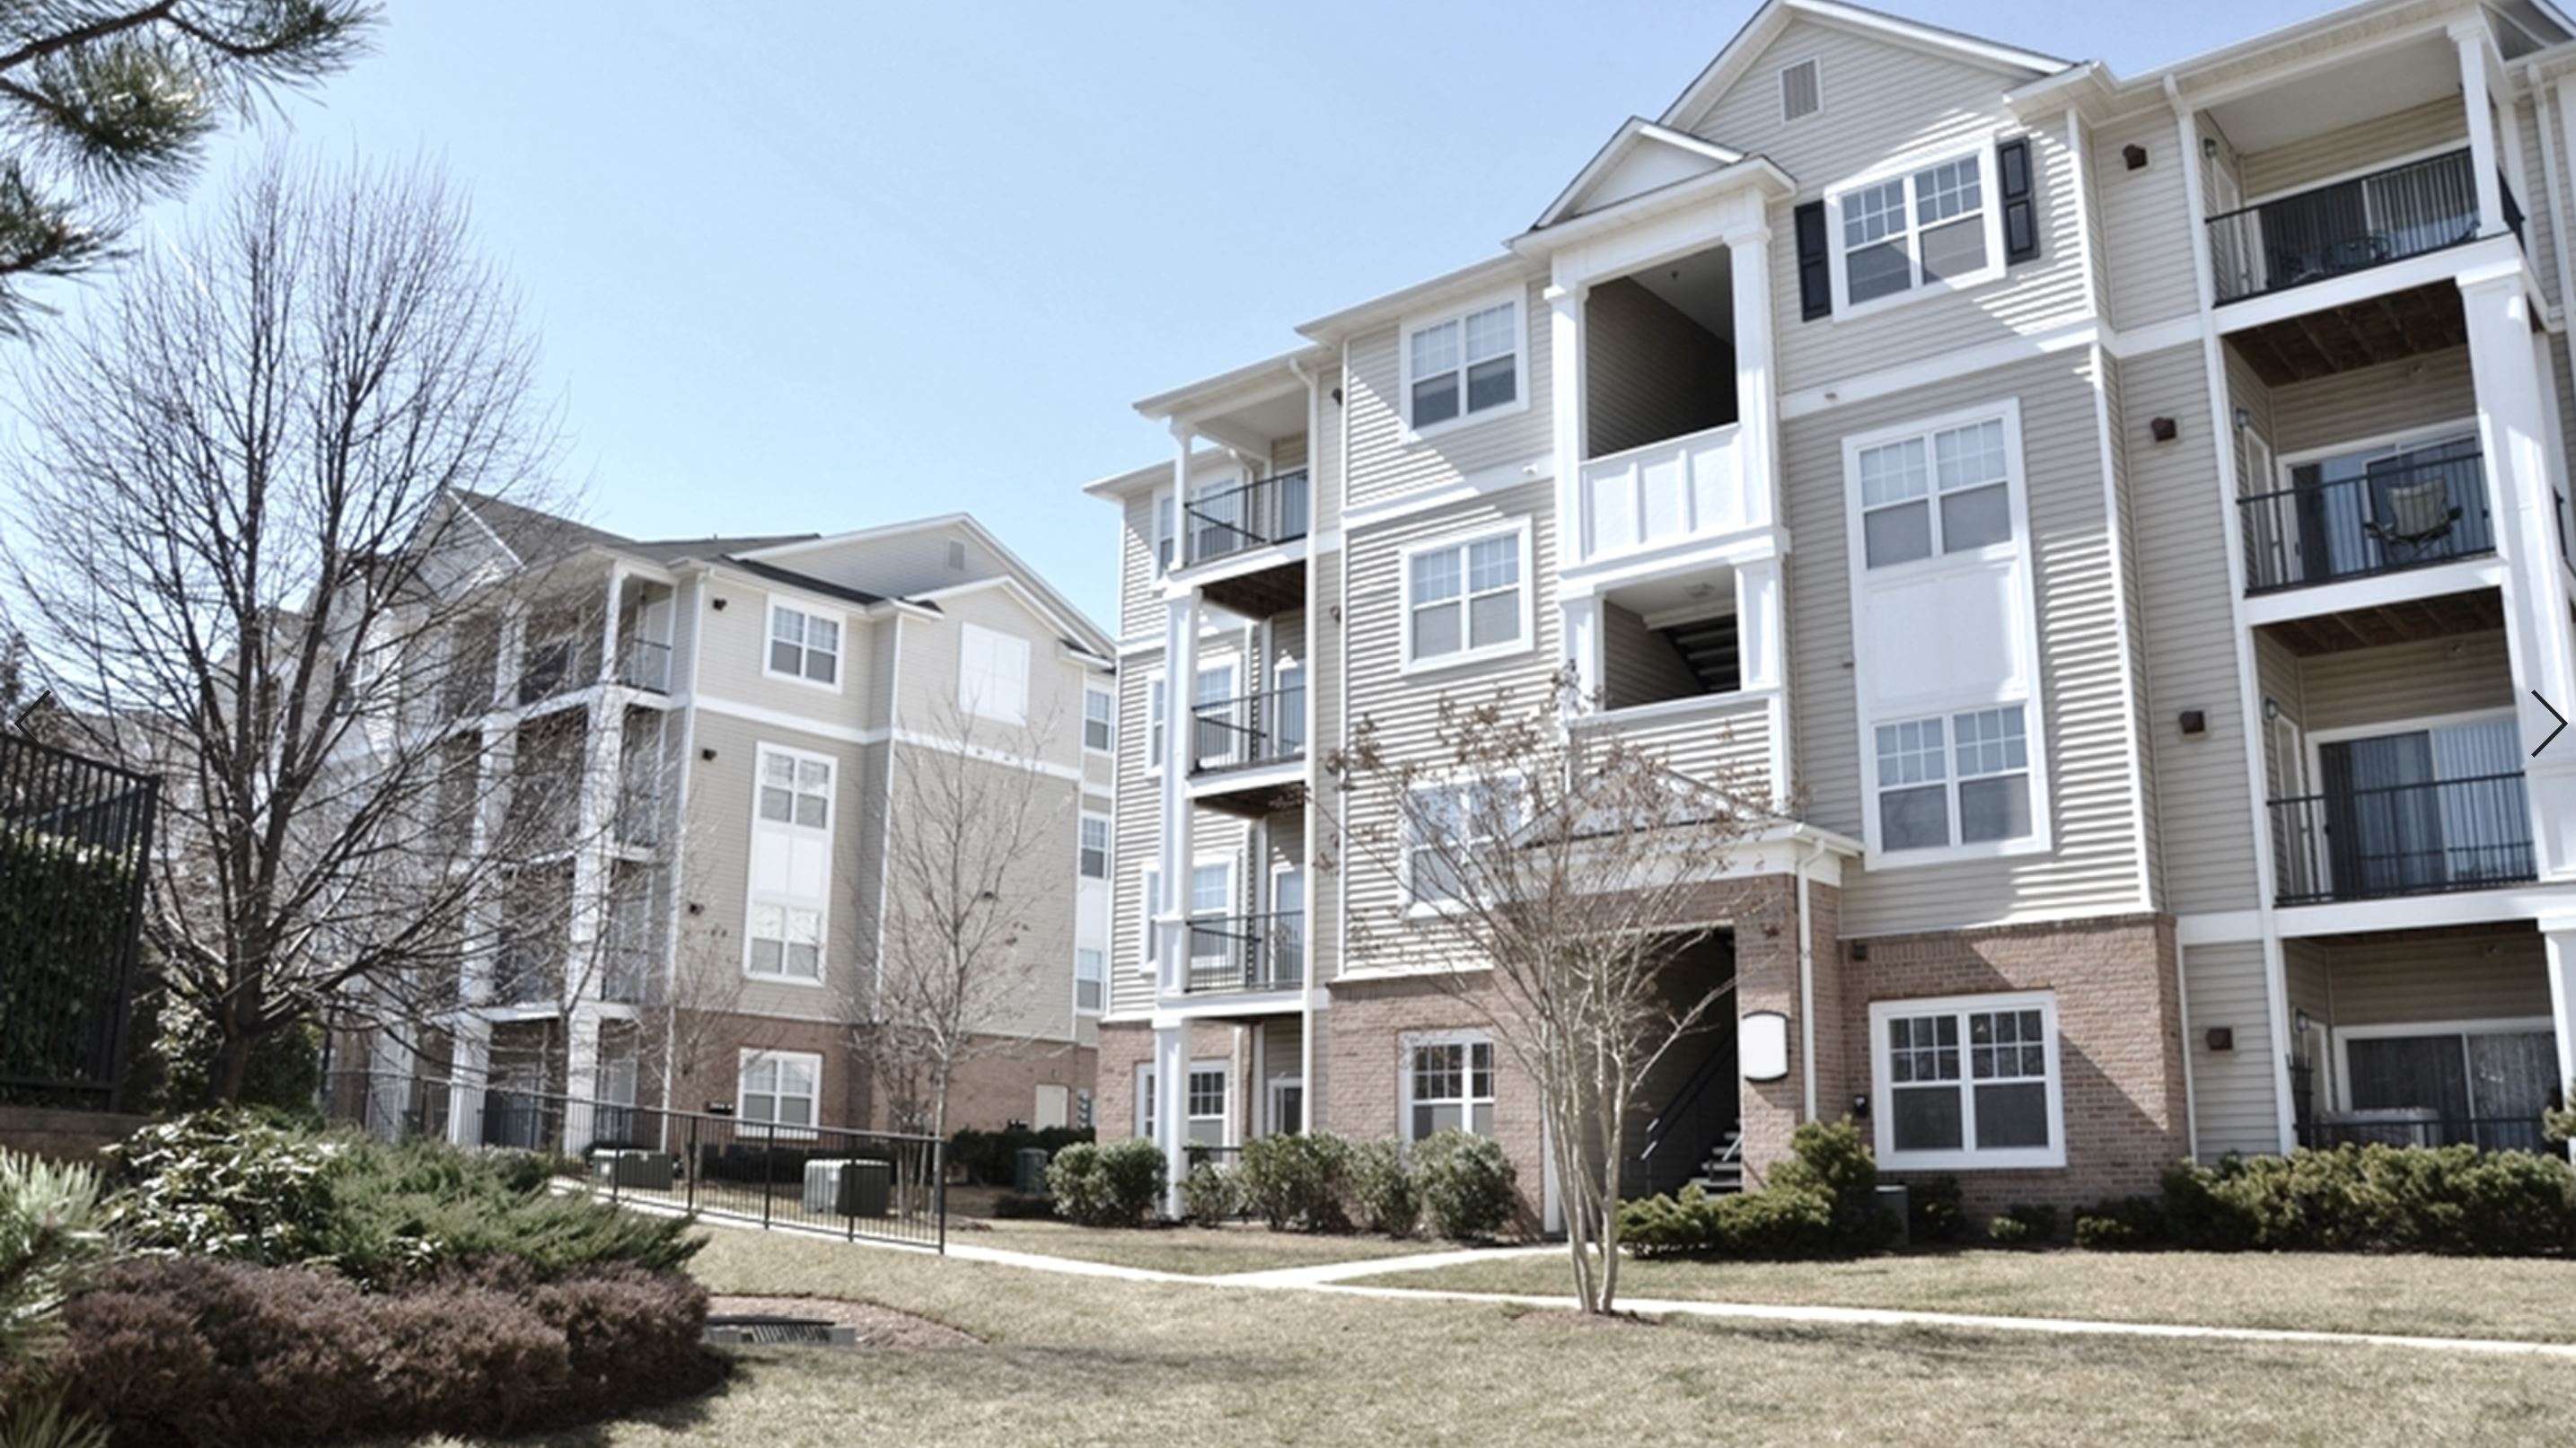 How Are Multifamily Assets Classified and Their Value